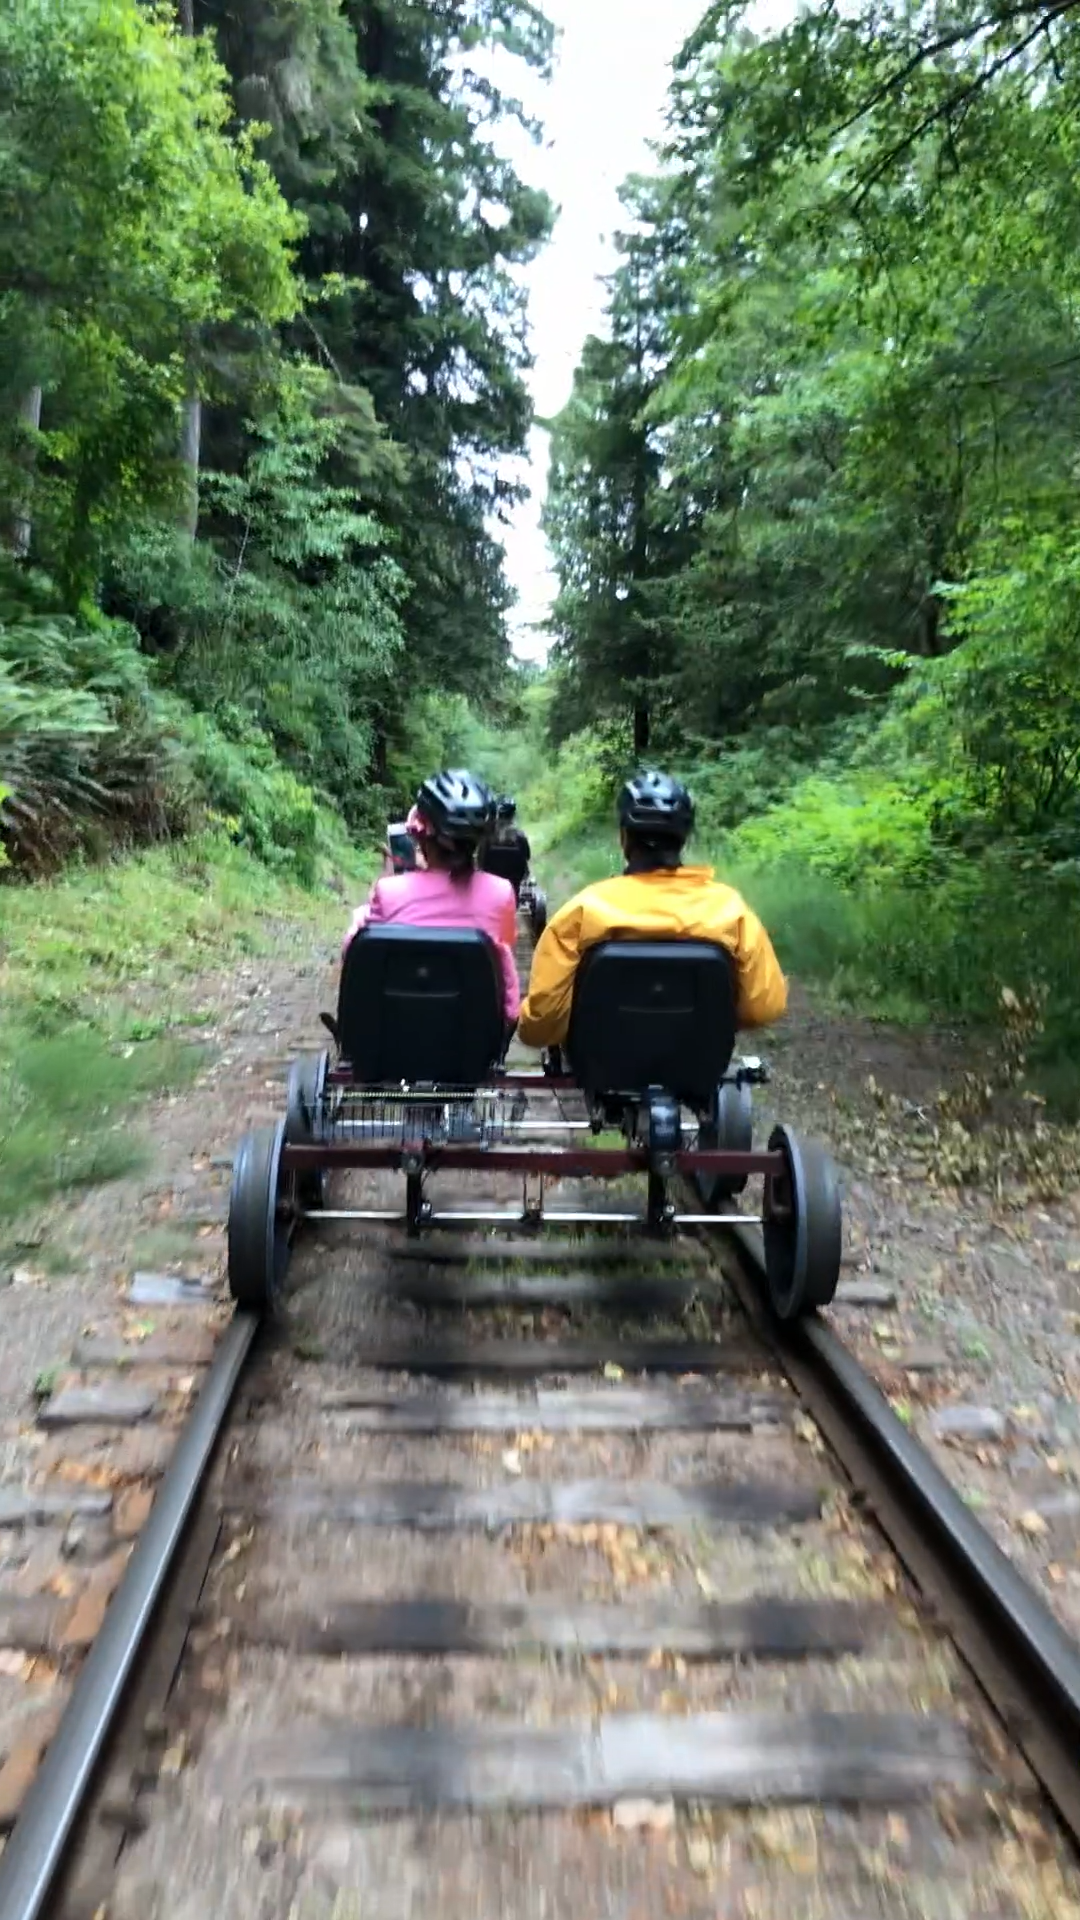 A fun way to explore - rail biking is in select states around the country. It's easy too - electric powered! Hop on a rail bike and get on the actual train rail and explore the redwoods! More on the blog post! This particular spot is in the Redwoods in Mendocino County but there are some on the East Coast as well! #travel